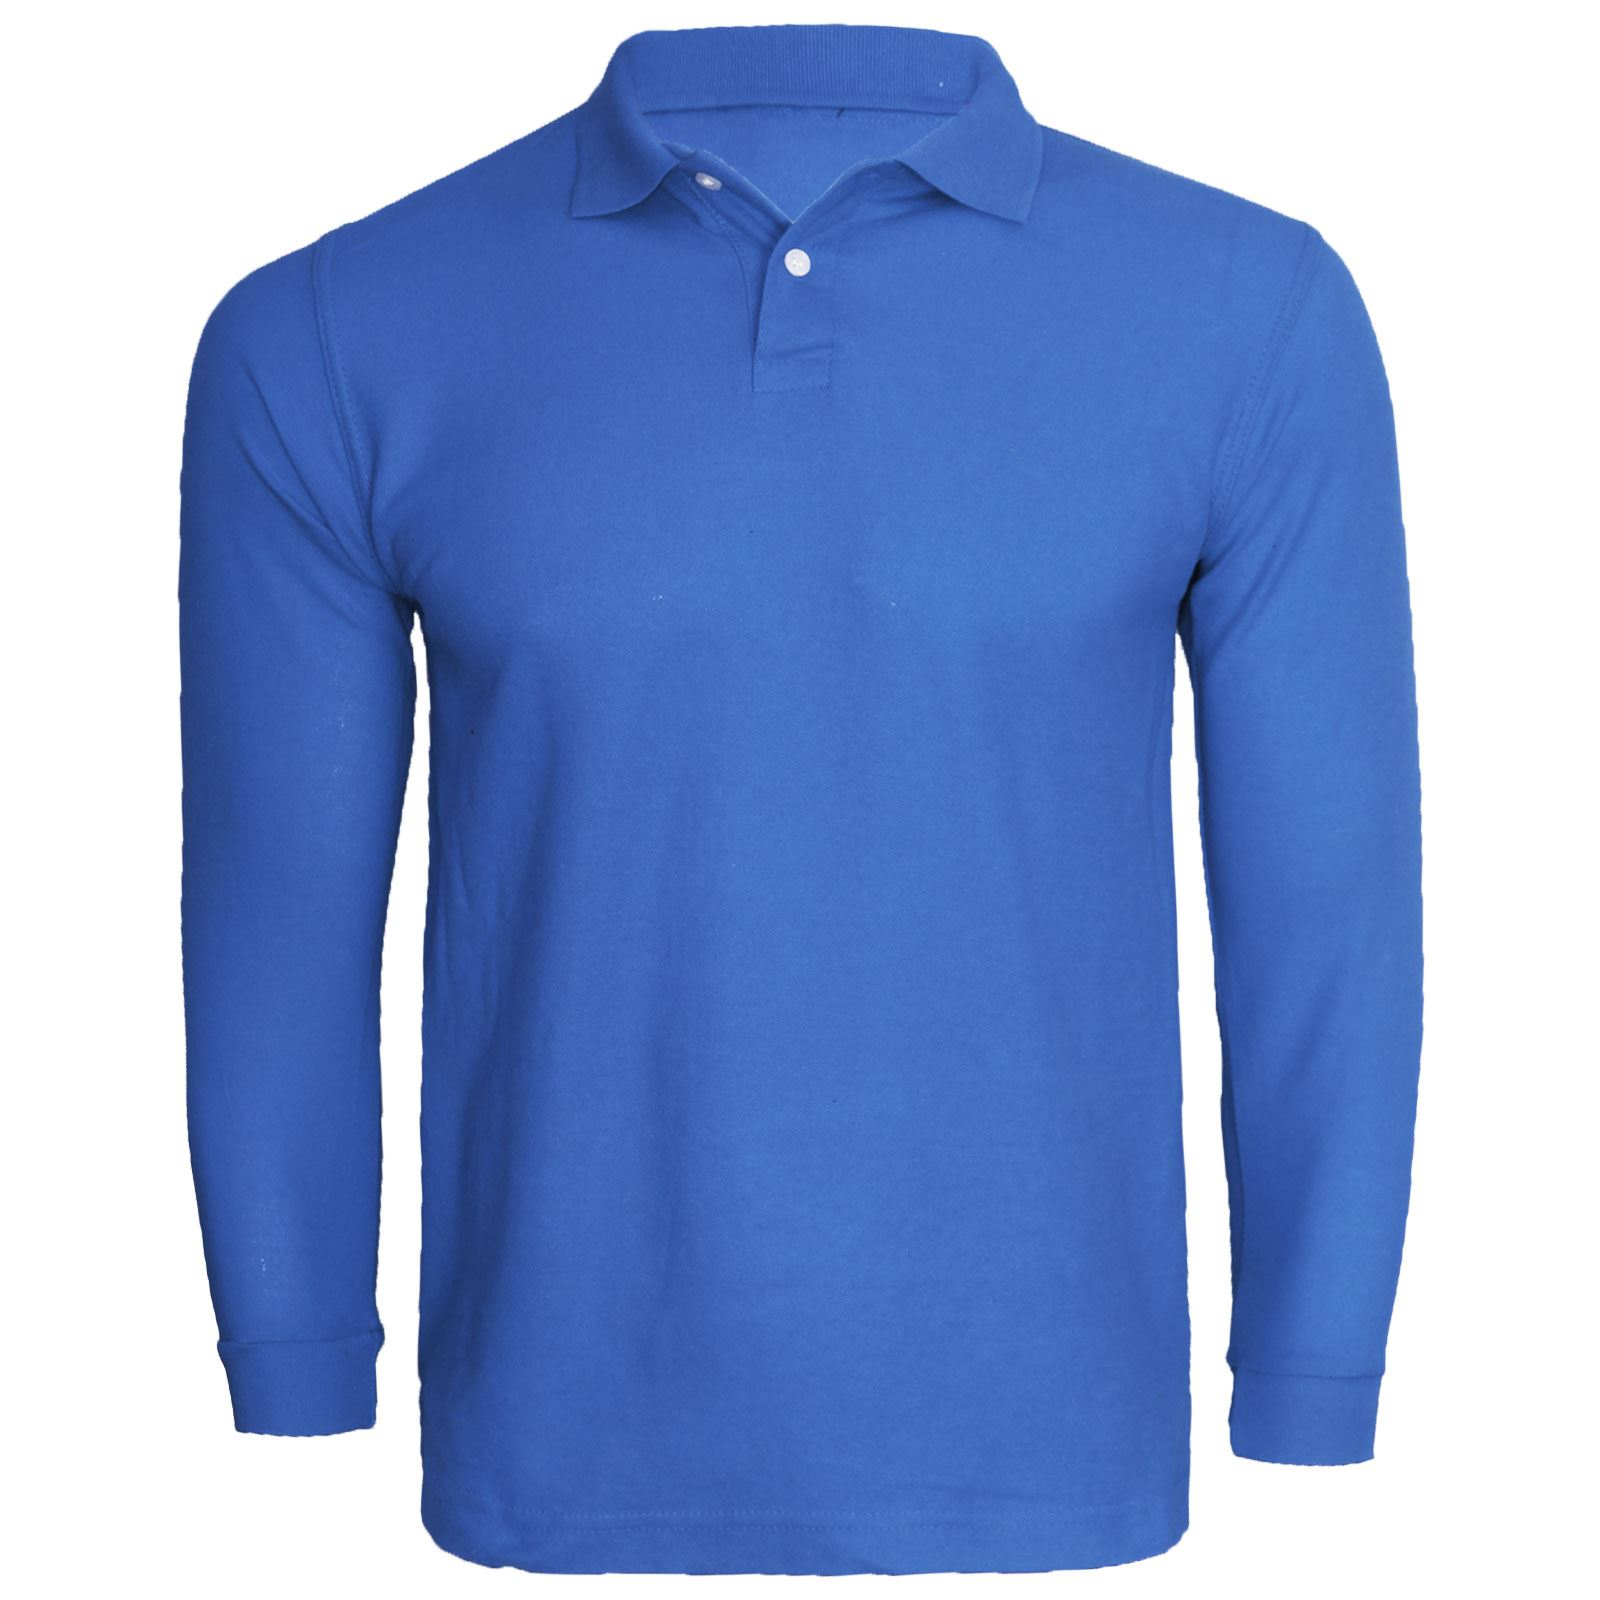 Free shipping BOTH ways on lacoste kids long sleeve classic pique polo shirt toddler little kids big kids, from our vast selection of styles. Fast delivery, and 24/7/ real-person service with a smile. Click or call